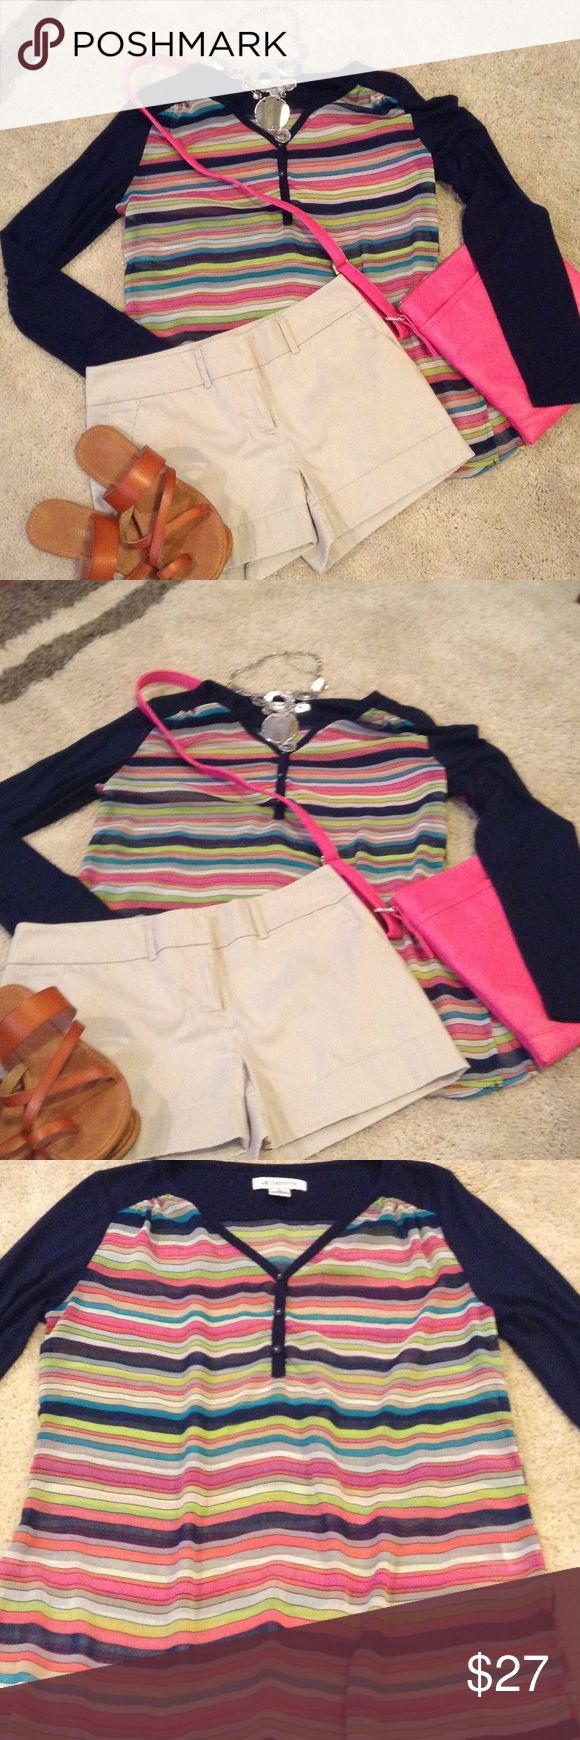 Liz Claiborne strip sheer shirt Beautiful stripe shirt, sheer lightweight long sleeve blouse. Free necklace with ask price. Crossbody pink purse for sale, $22 Liz Claiborne Tops Blouses